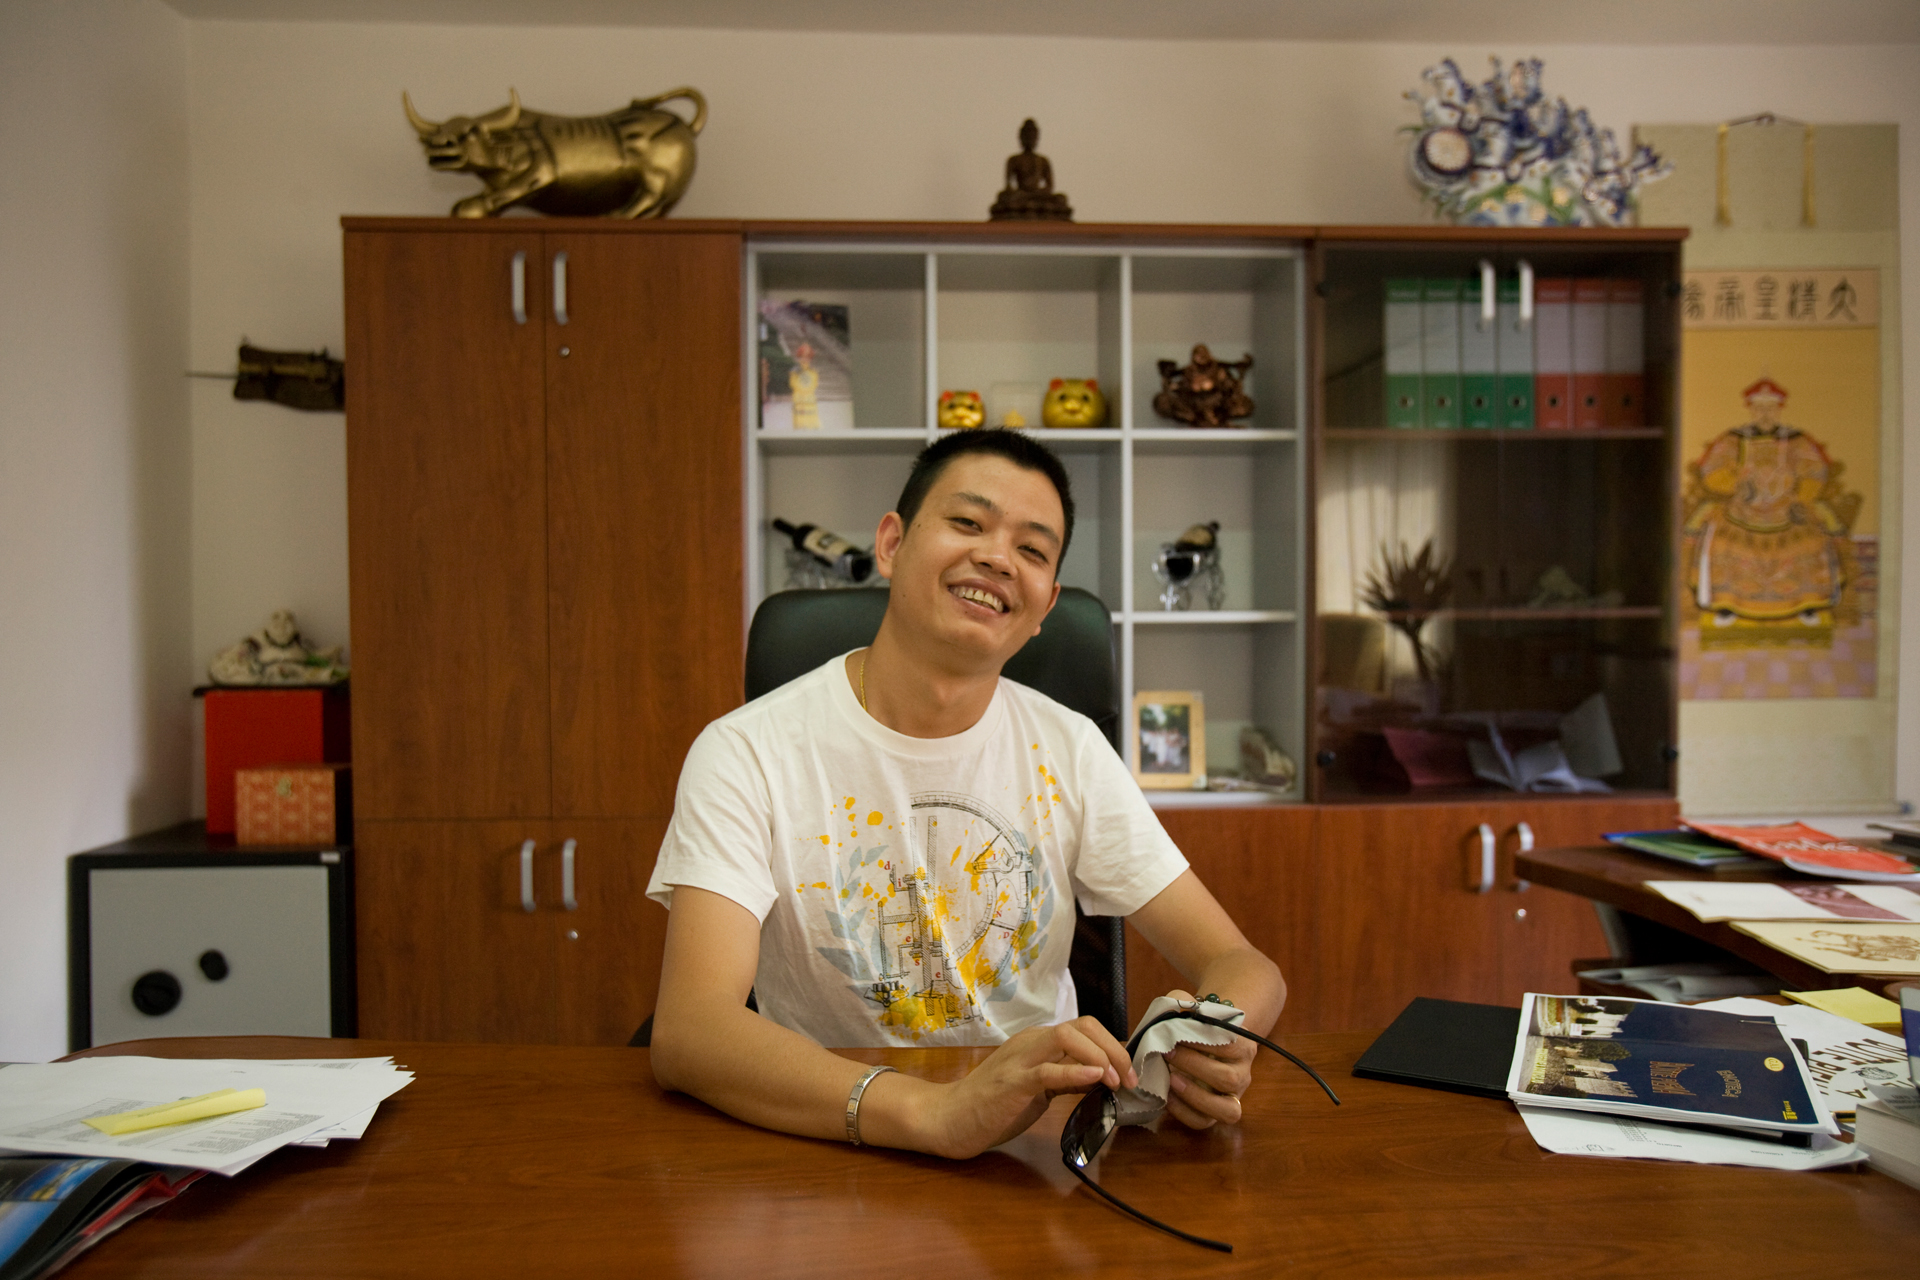 Like many Chinese businessmen in Prato, Hu Bing Liang, has adopted an Italian name, Petro. Initially a worker in a sewing factory, he recently opened Chinatown's first fine wine and liquor store - the largest of its kind with an inventory worth €600.000 ($800,000 US).